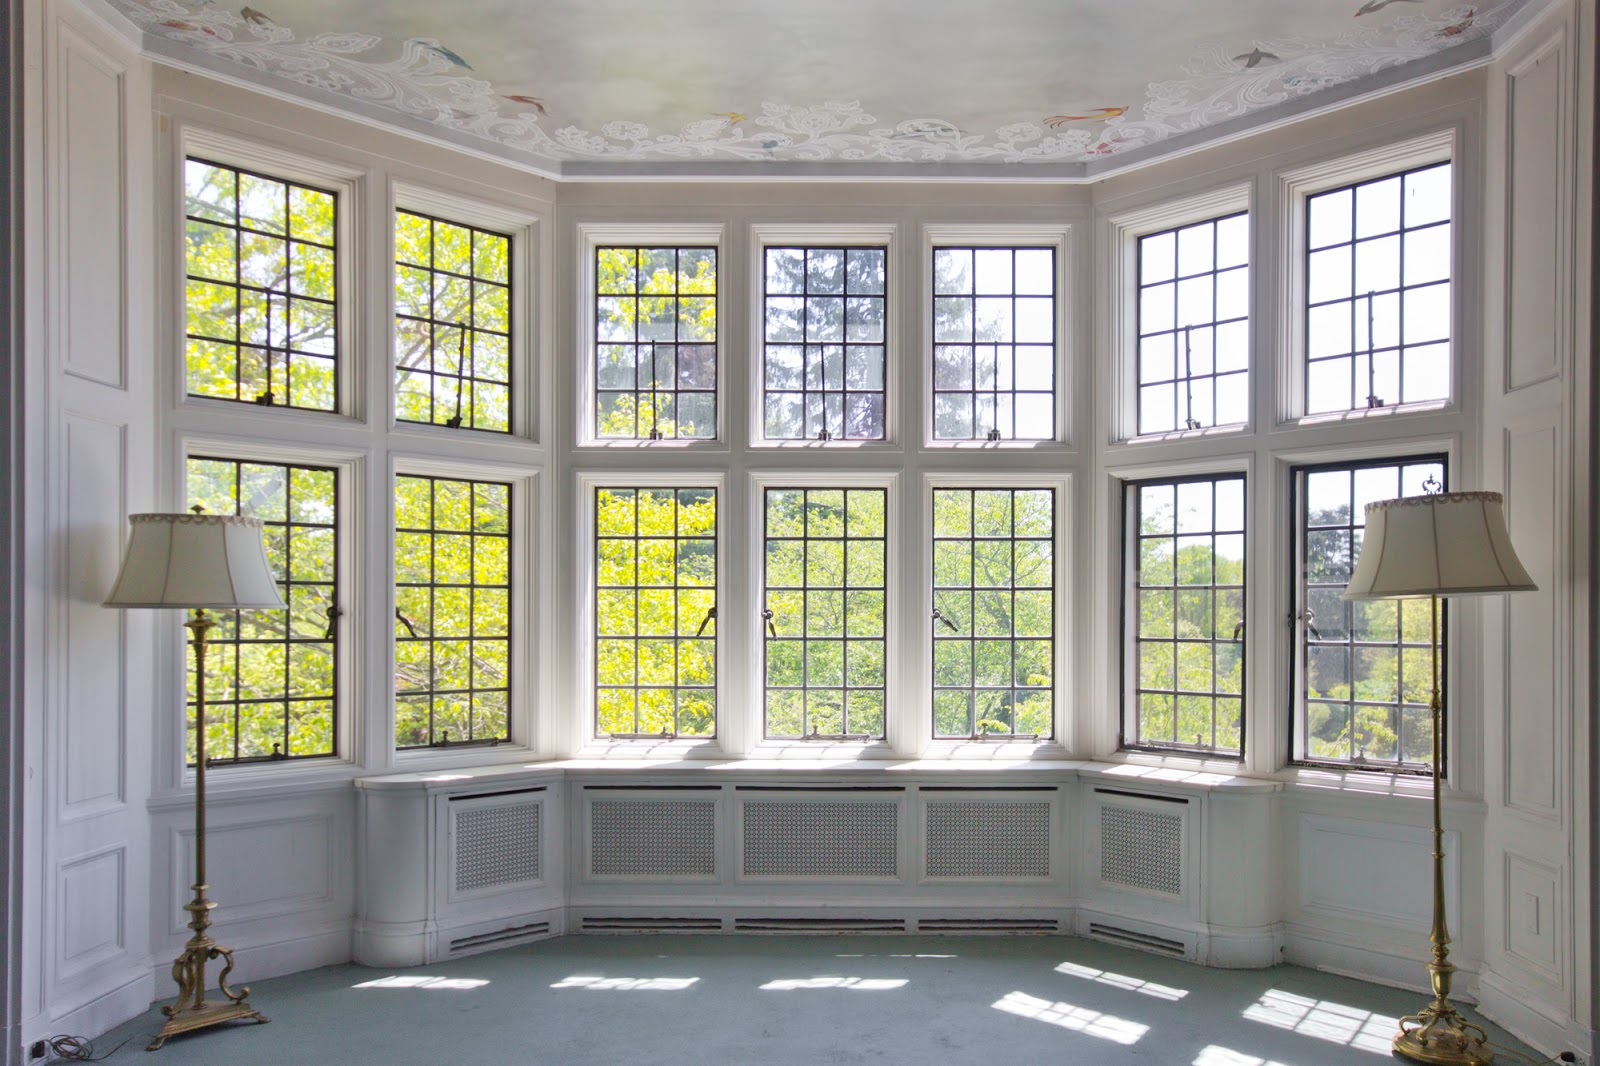 How To Build Roof Over Bay Window Frame A